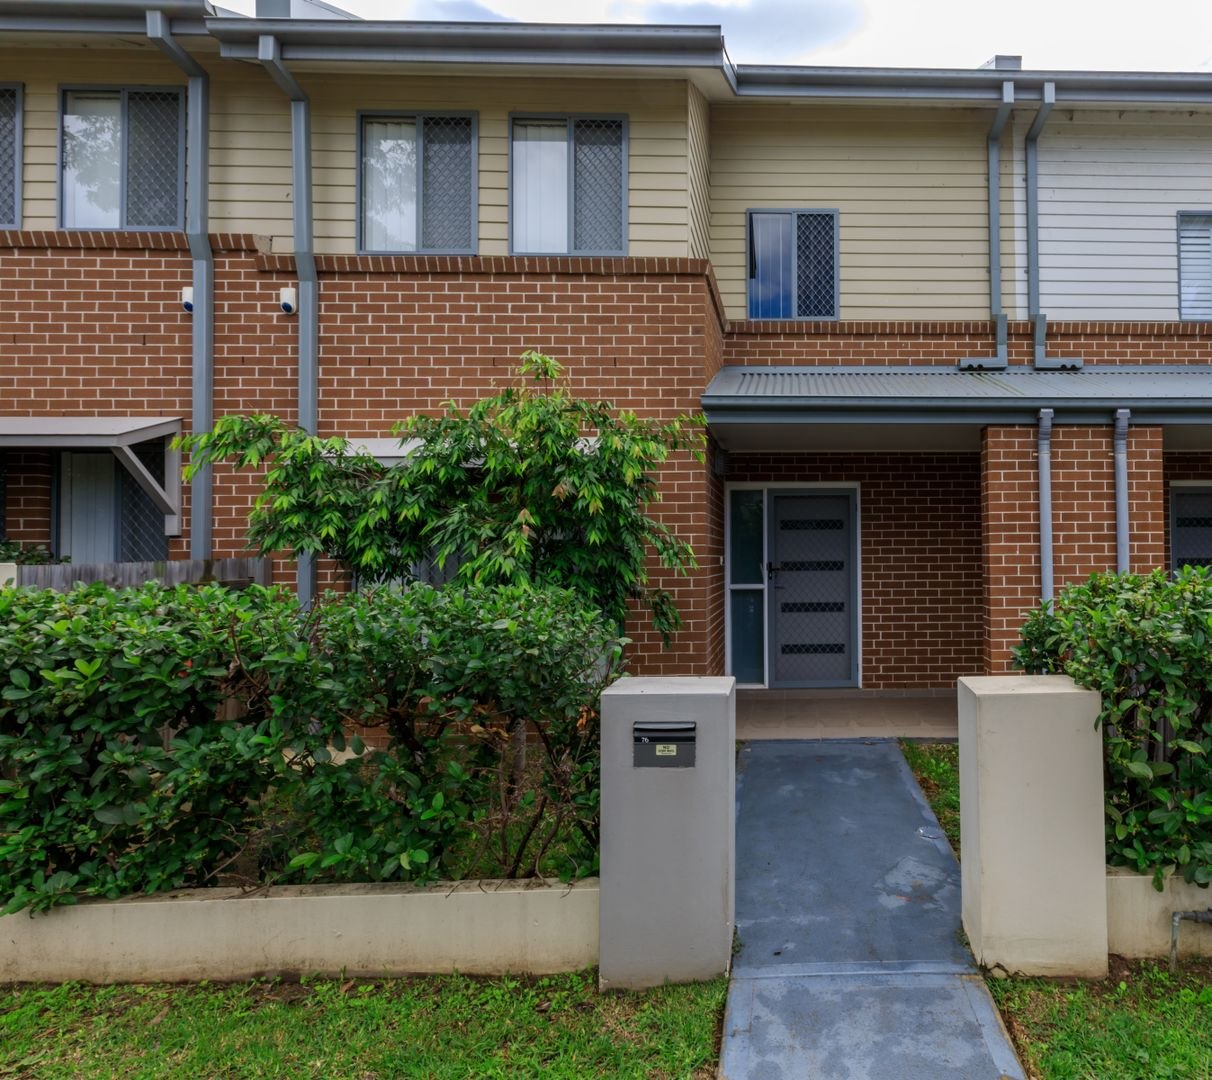 76 LAKEVIEW DRIVE, Cranebrook NSW 2749, Image 0